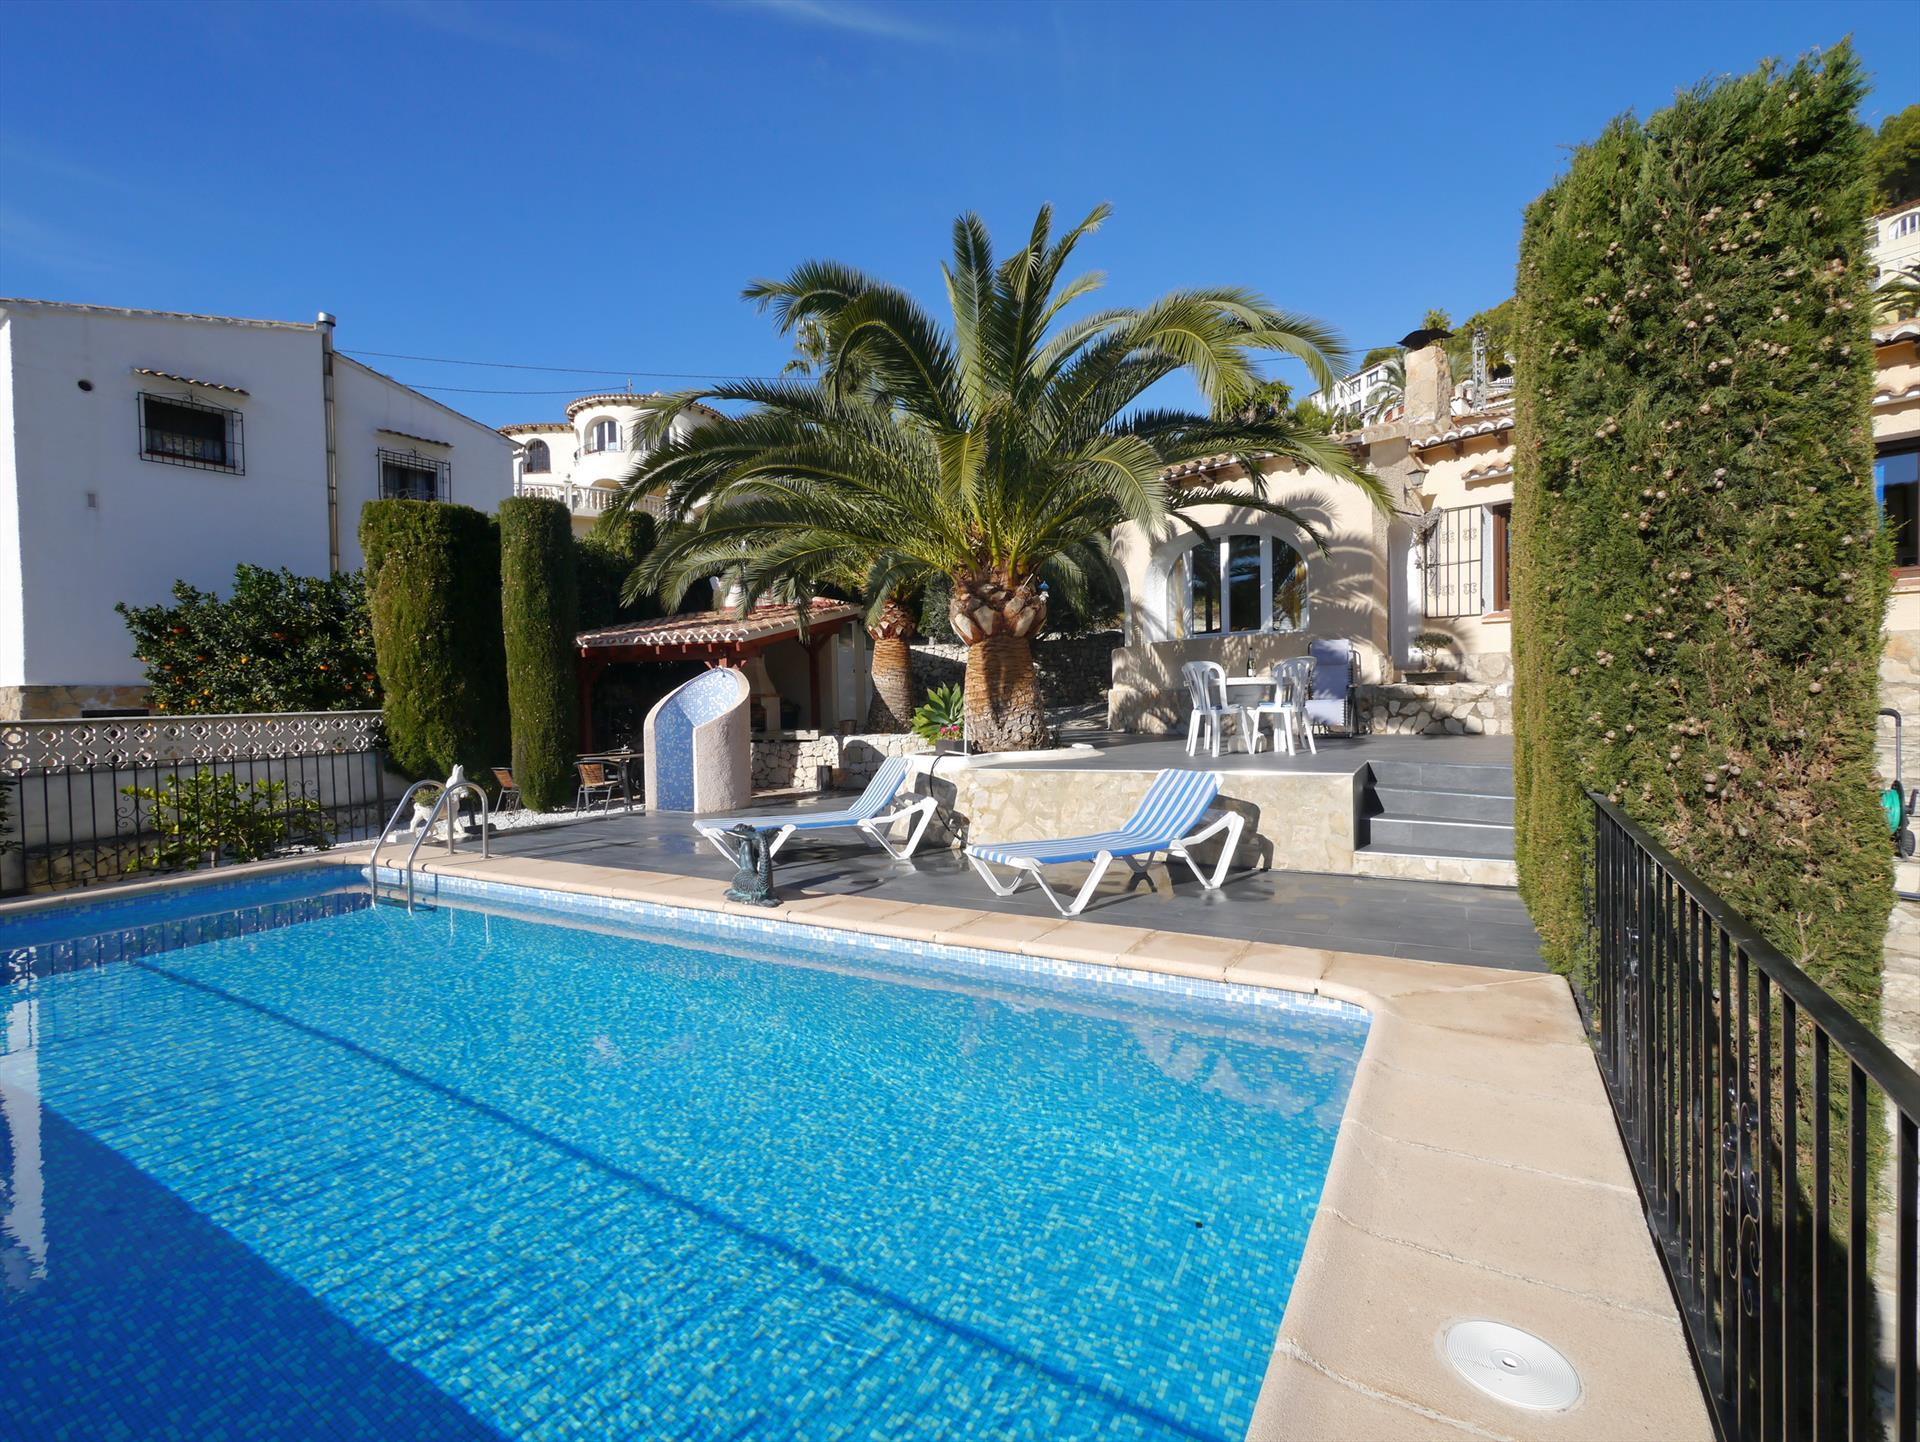 Eliana, Classic and comfortable villa in Benissa, on the Costa Blanca, Spain with private pool for 4 persons. The villa is situated.....